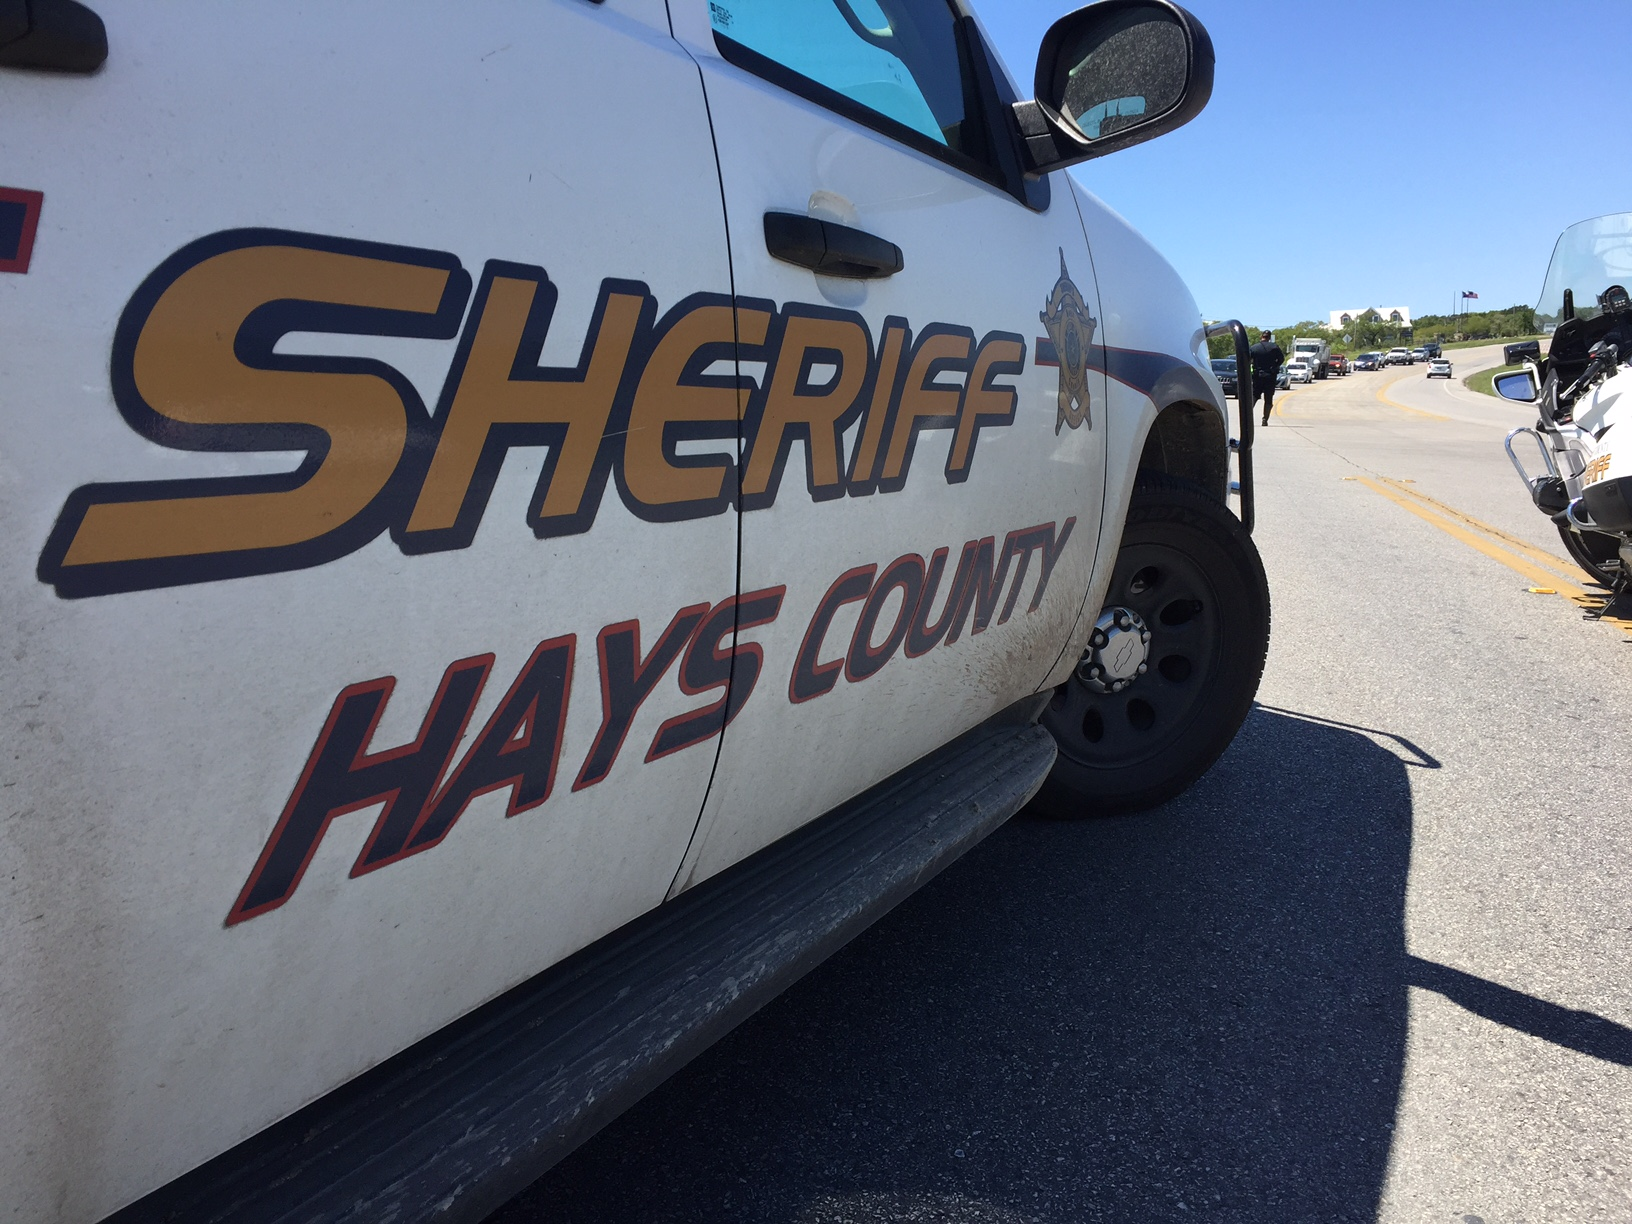 Hays County Sheriff's Office is investigating a robbery that left a clerk shot in the leg Saturday, June 12._267325